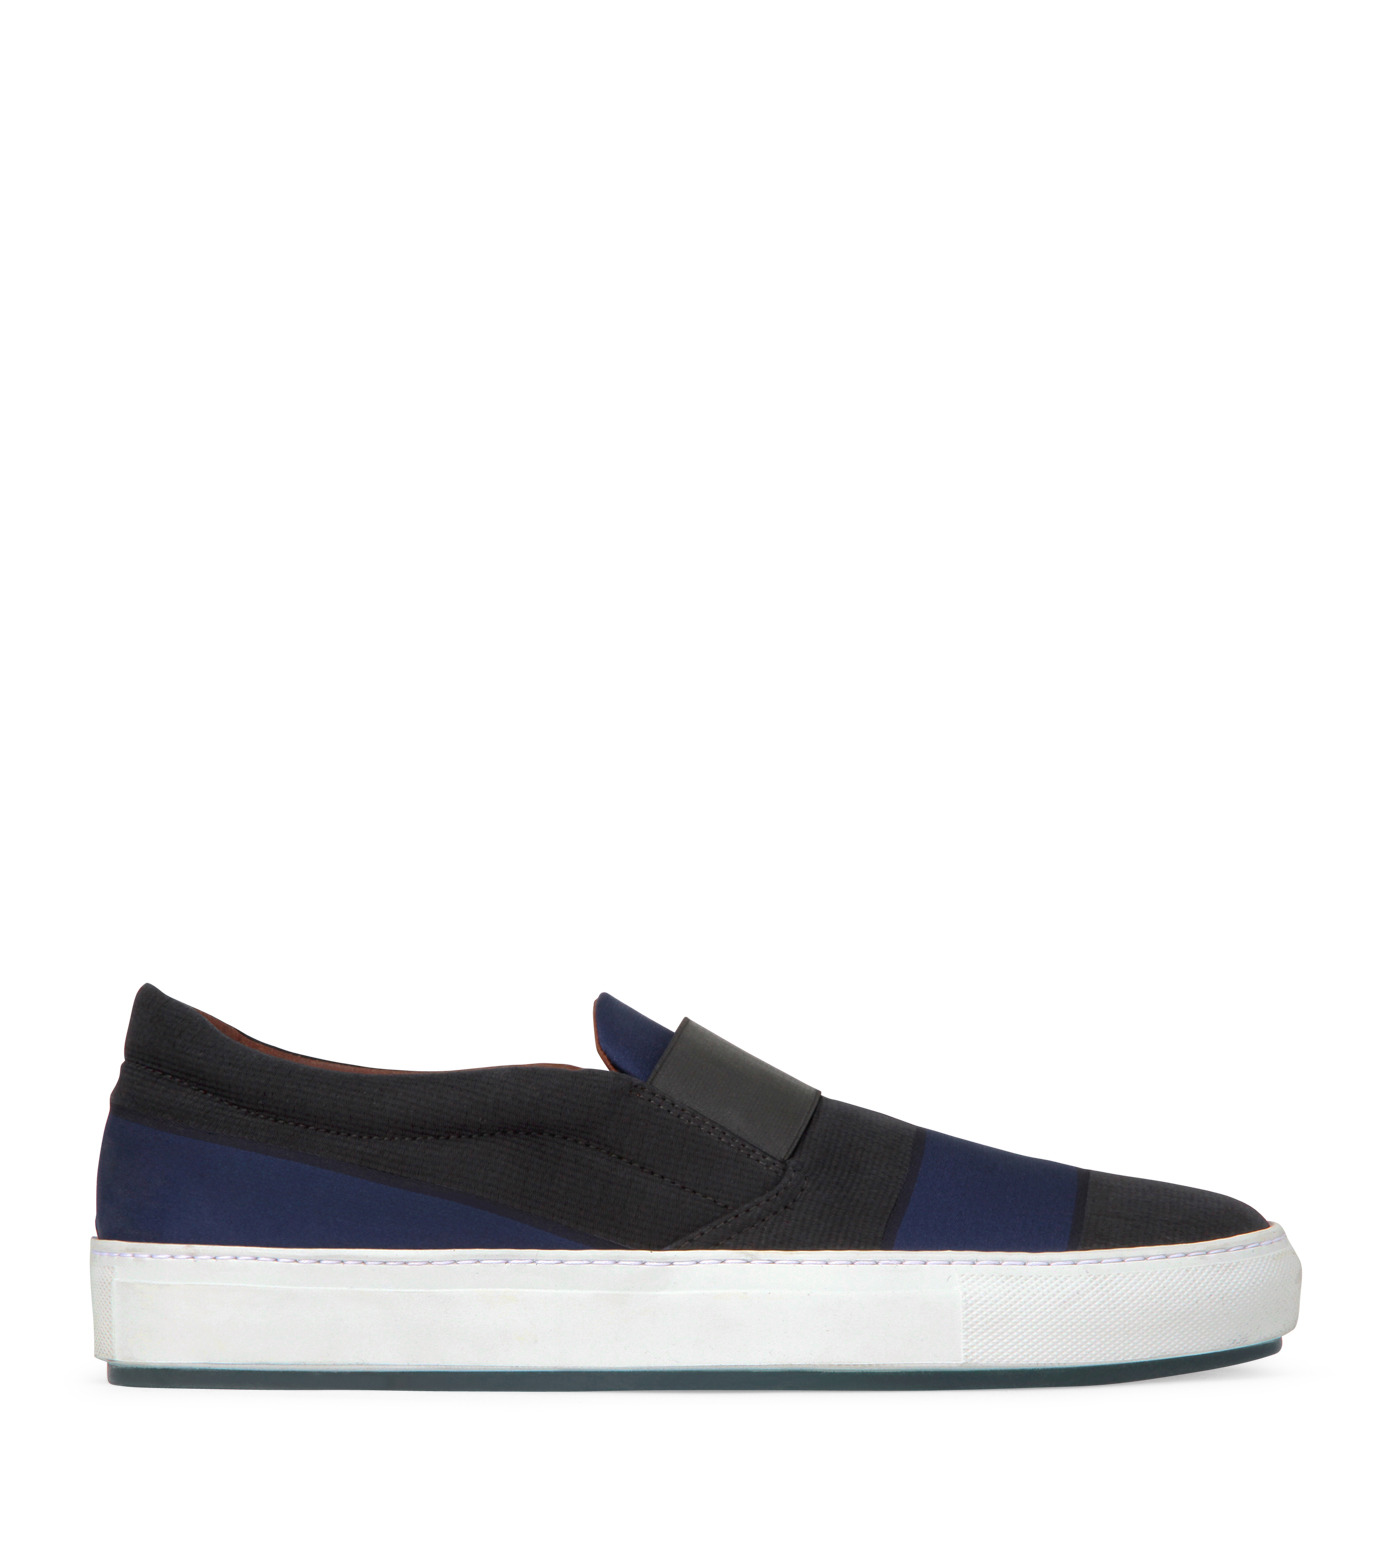 ACNE STUDIOS(アクネ)のSlip on-BLACK-HANS-COTTON-13 拡大詳細画像1